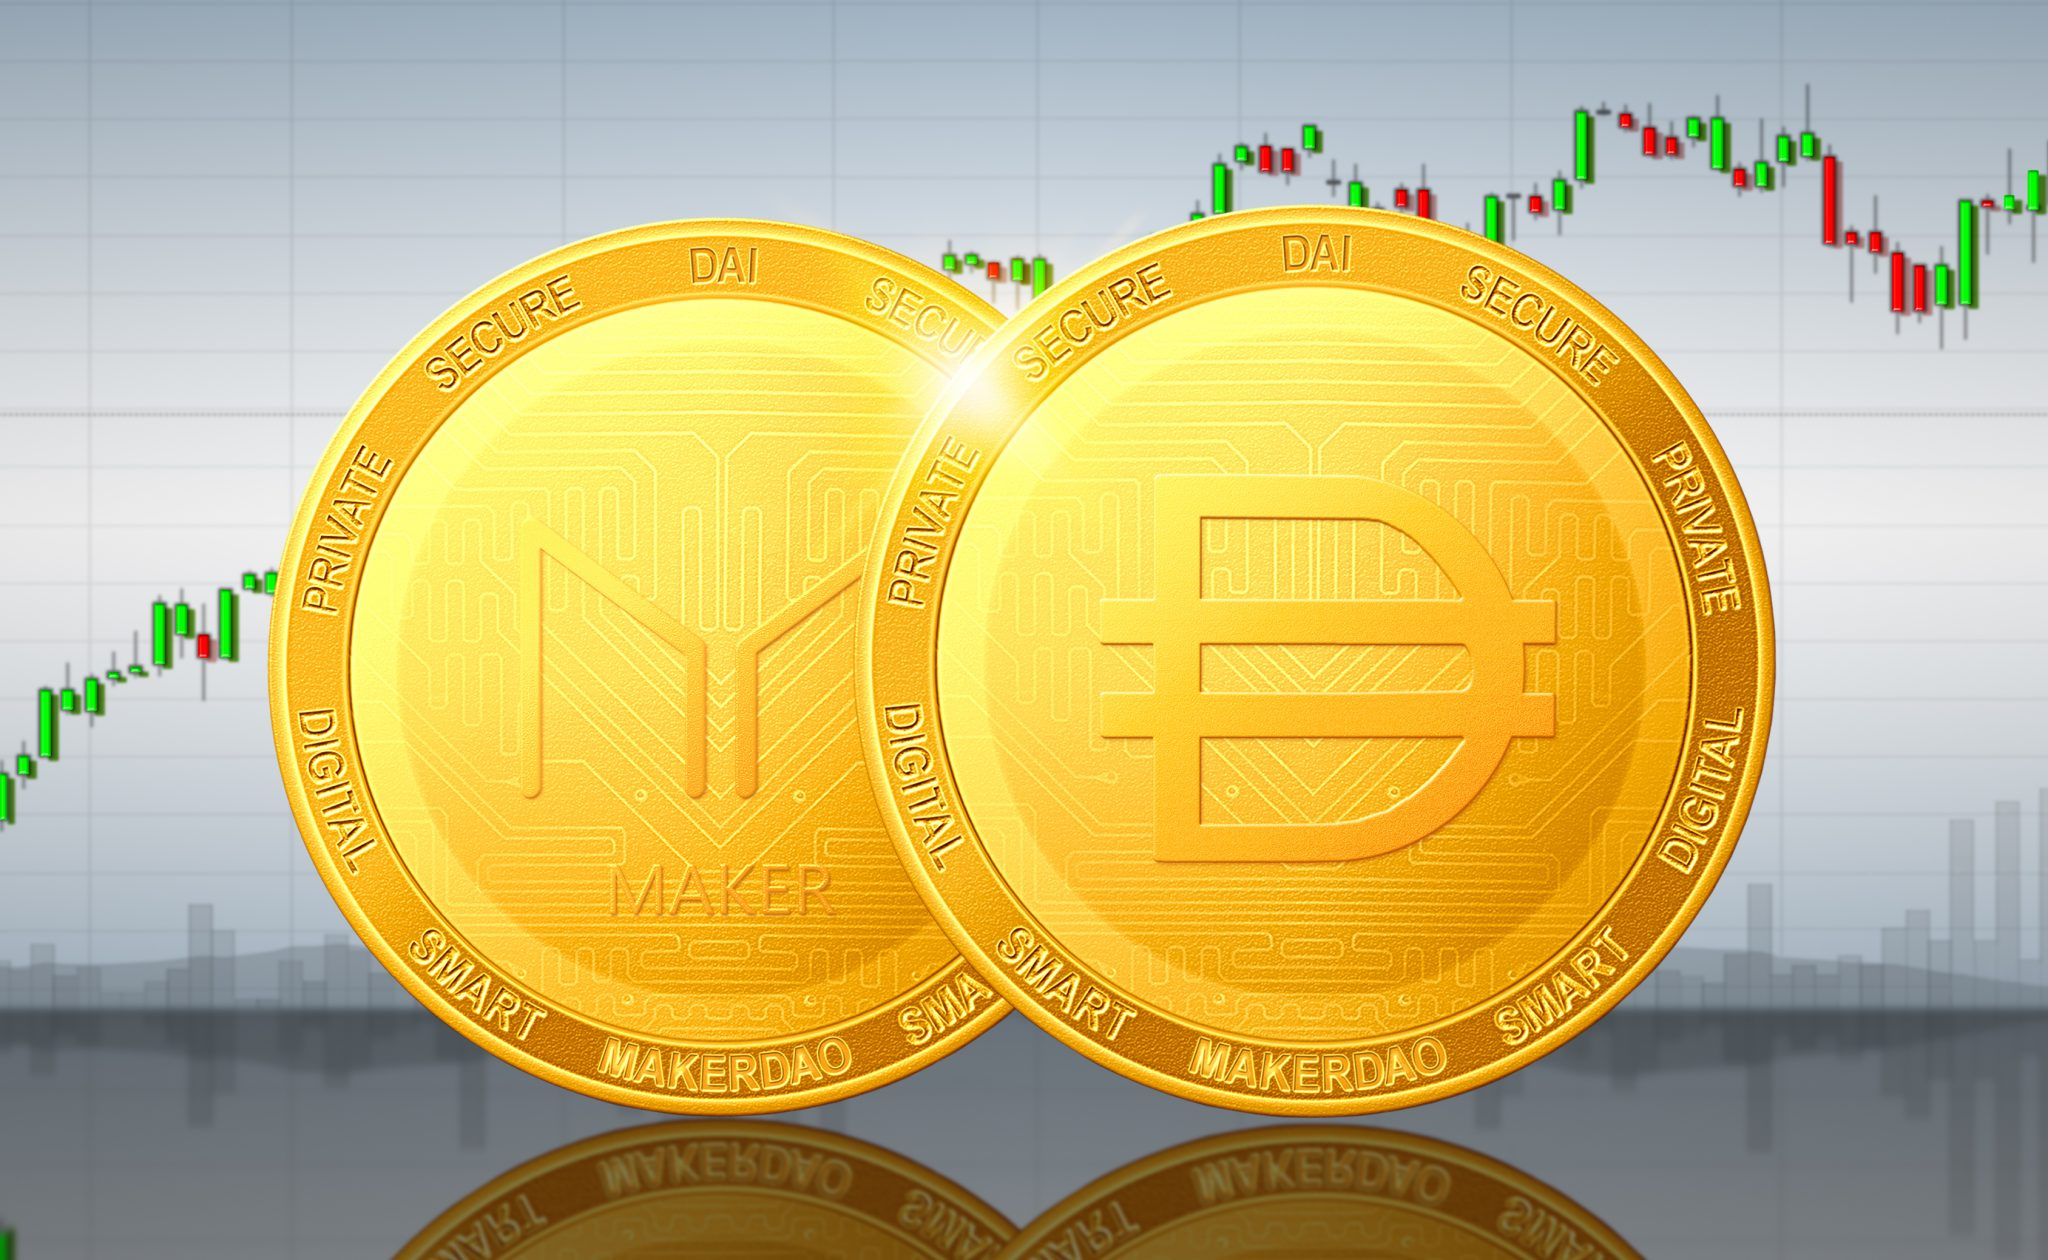 MakerDAO DAI cryptocurrency; MakerDAO DAI golden coins on the background of the chart